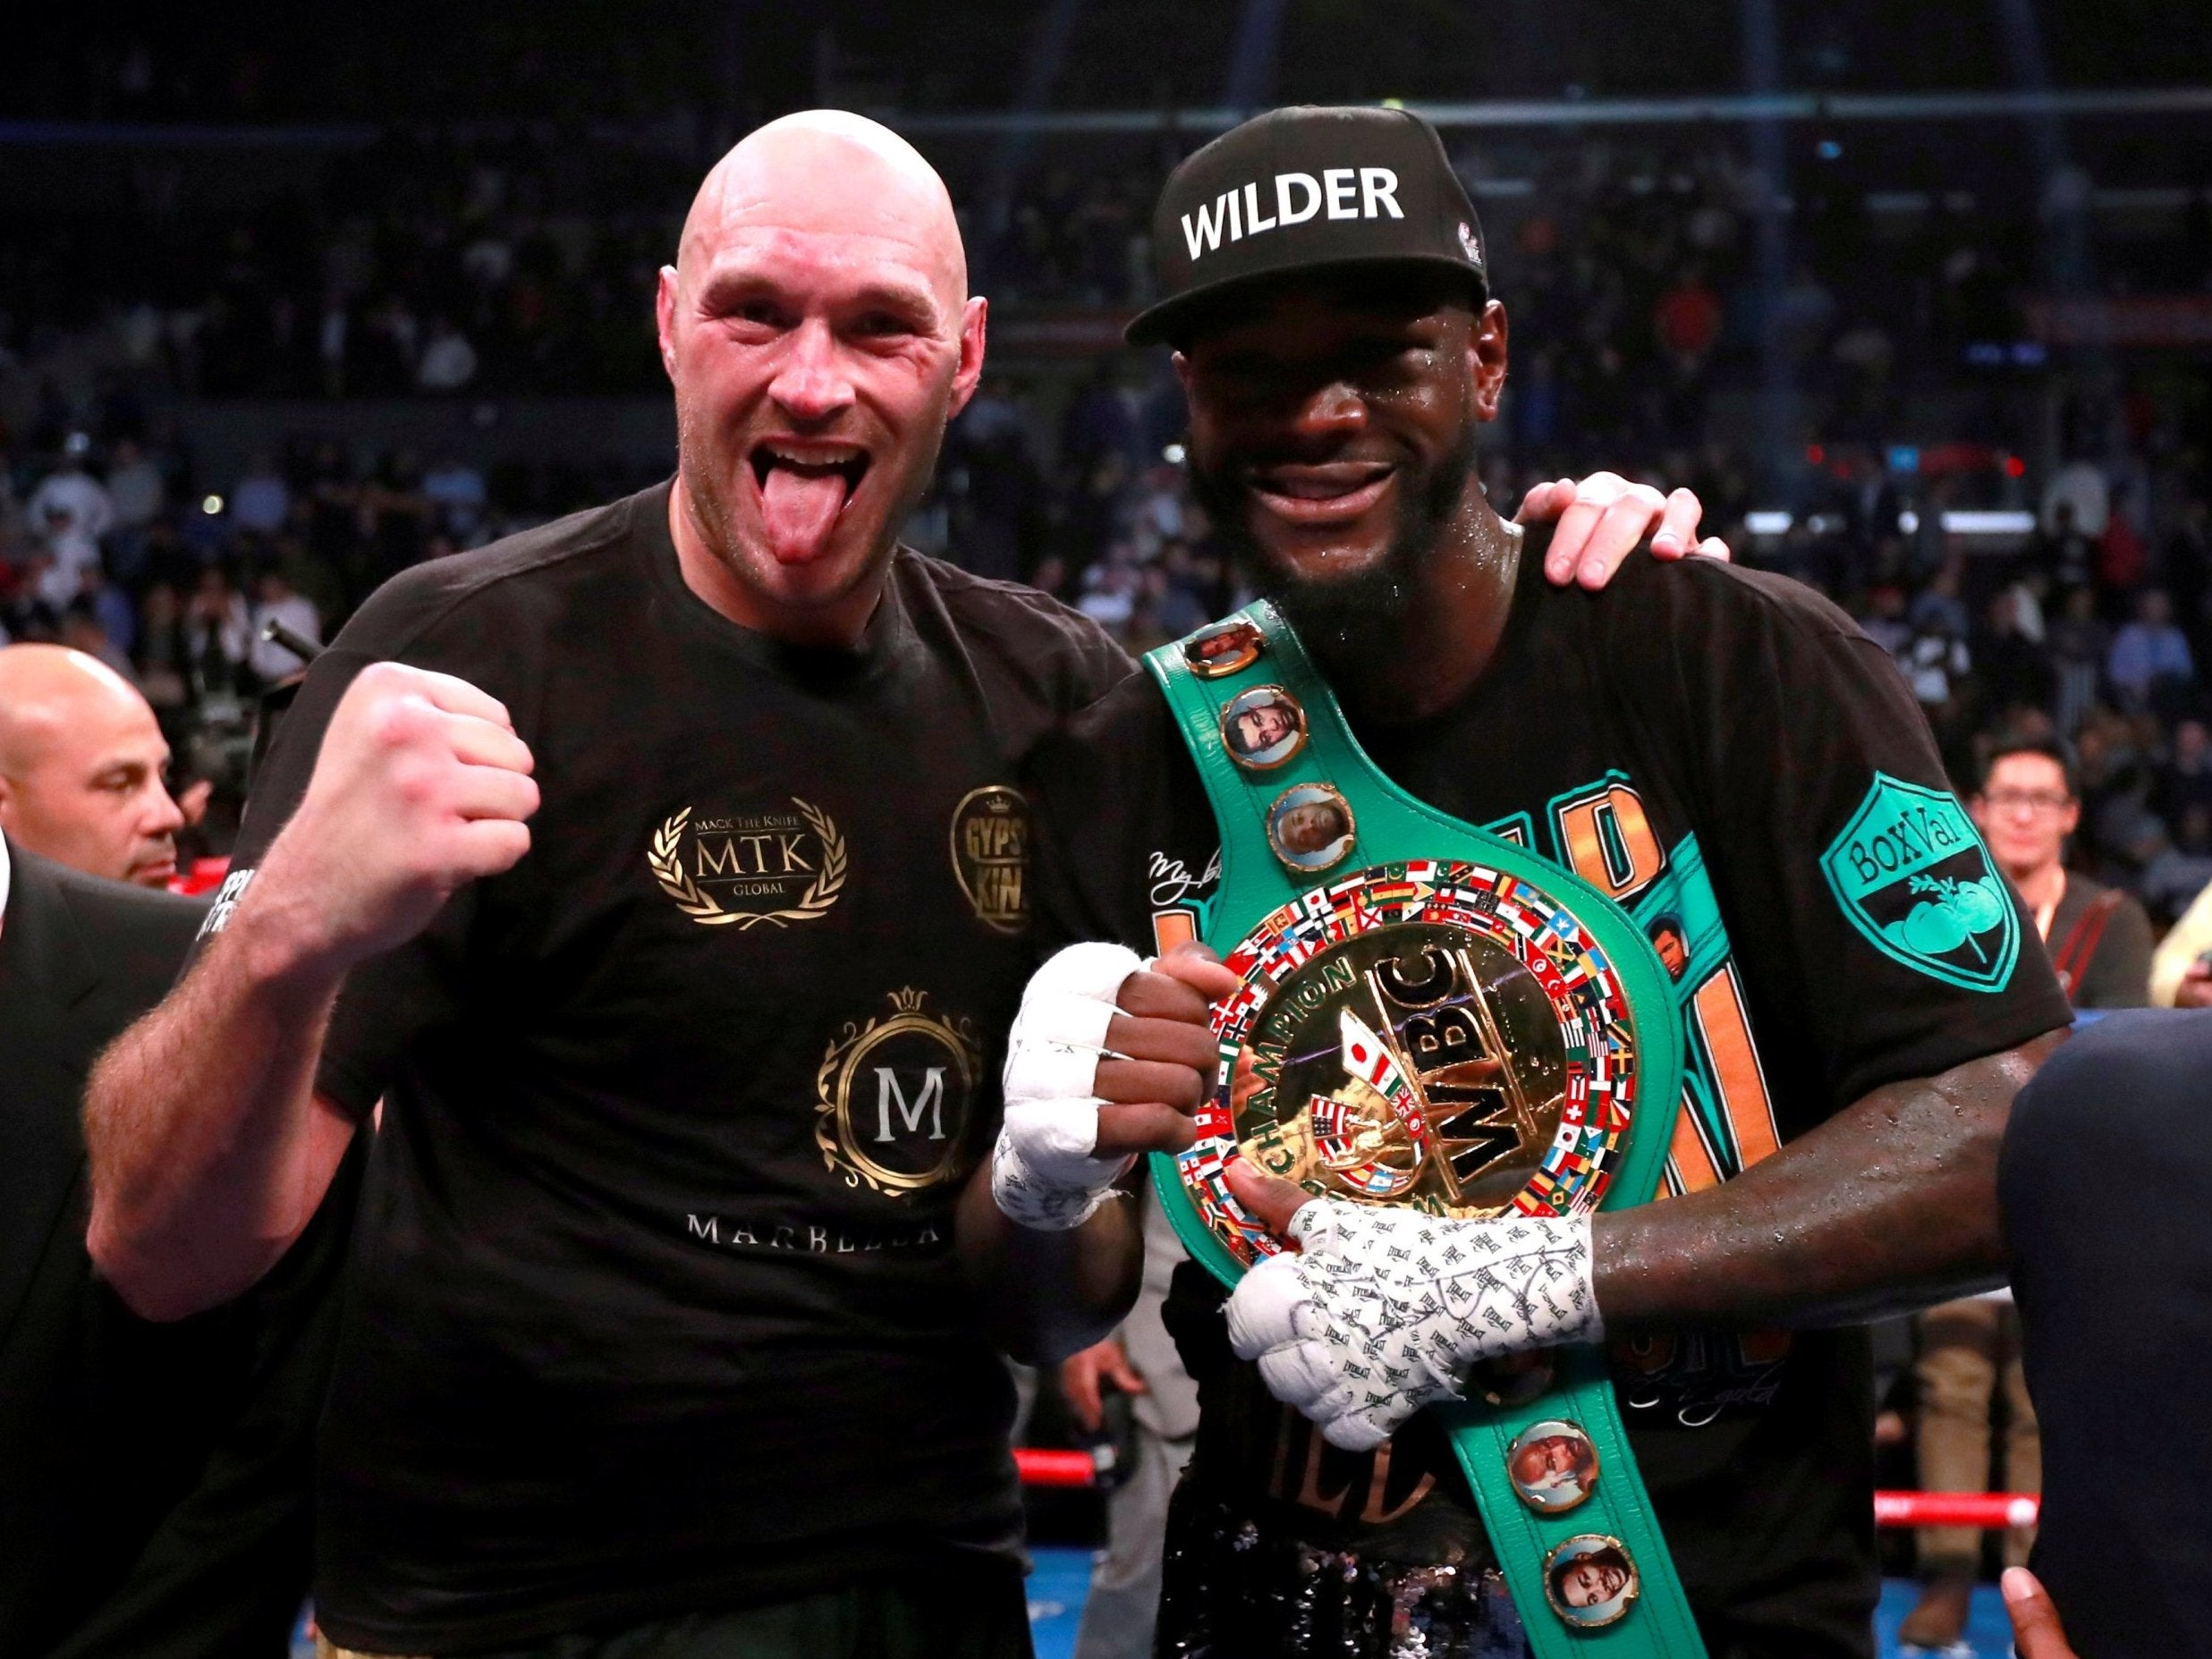 Tyson Fury fight: Purse splits for Brit's rematch vs Deontay Wilder and trilogy revealed by Bob Arum